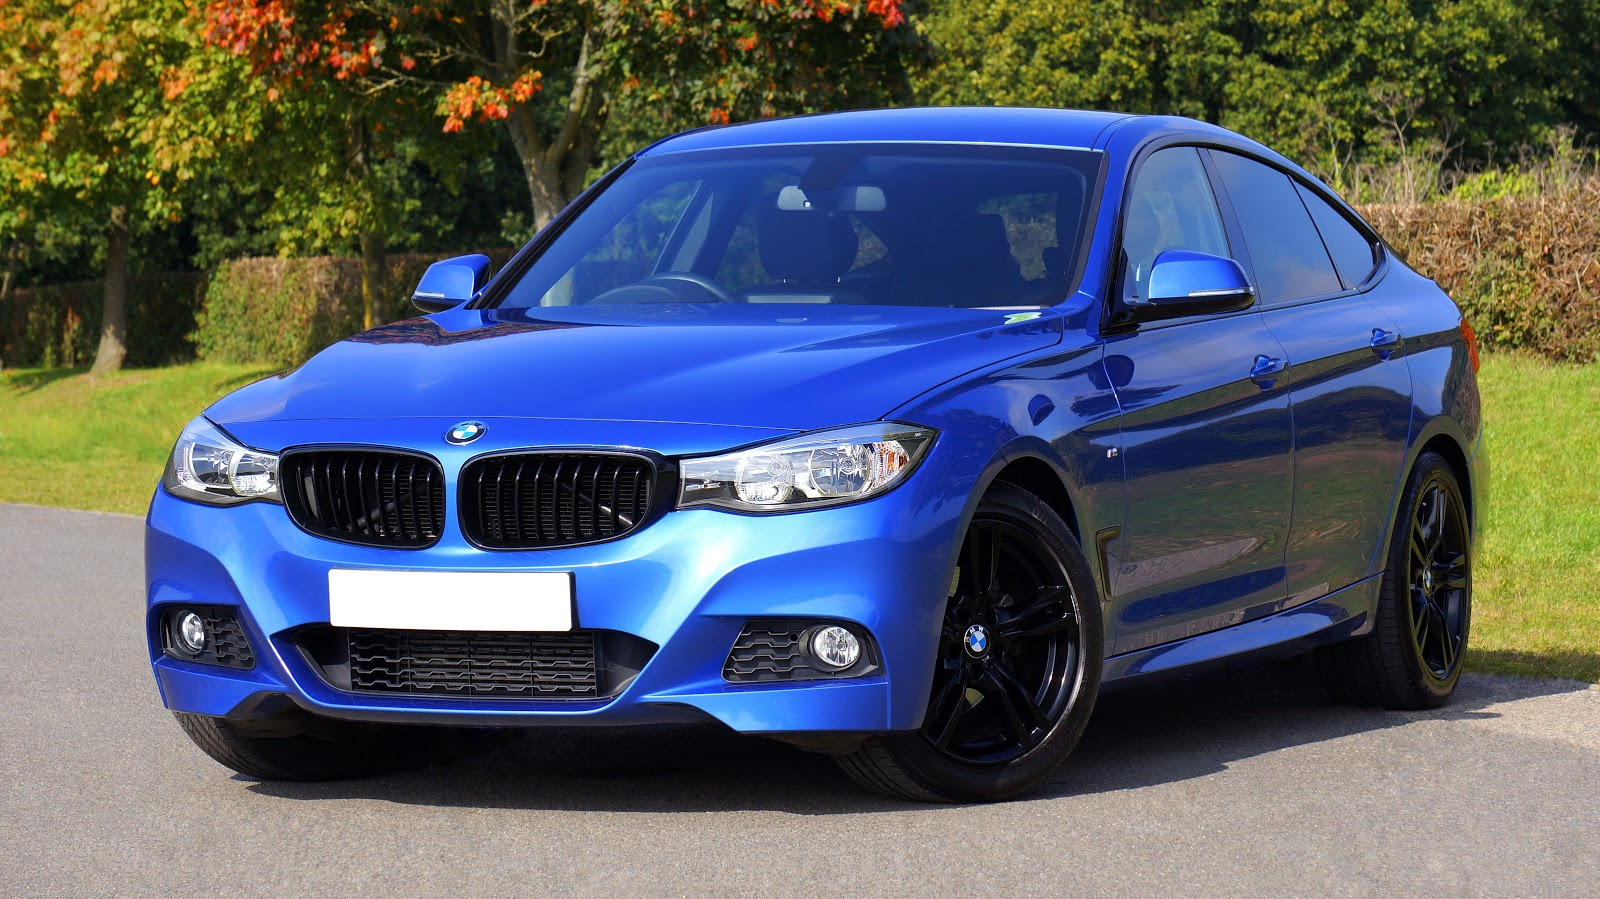 blue-bmw-sedan-near-green-lawn-grass-car-images